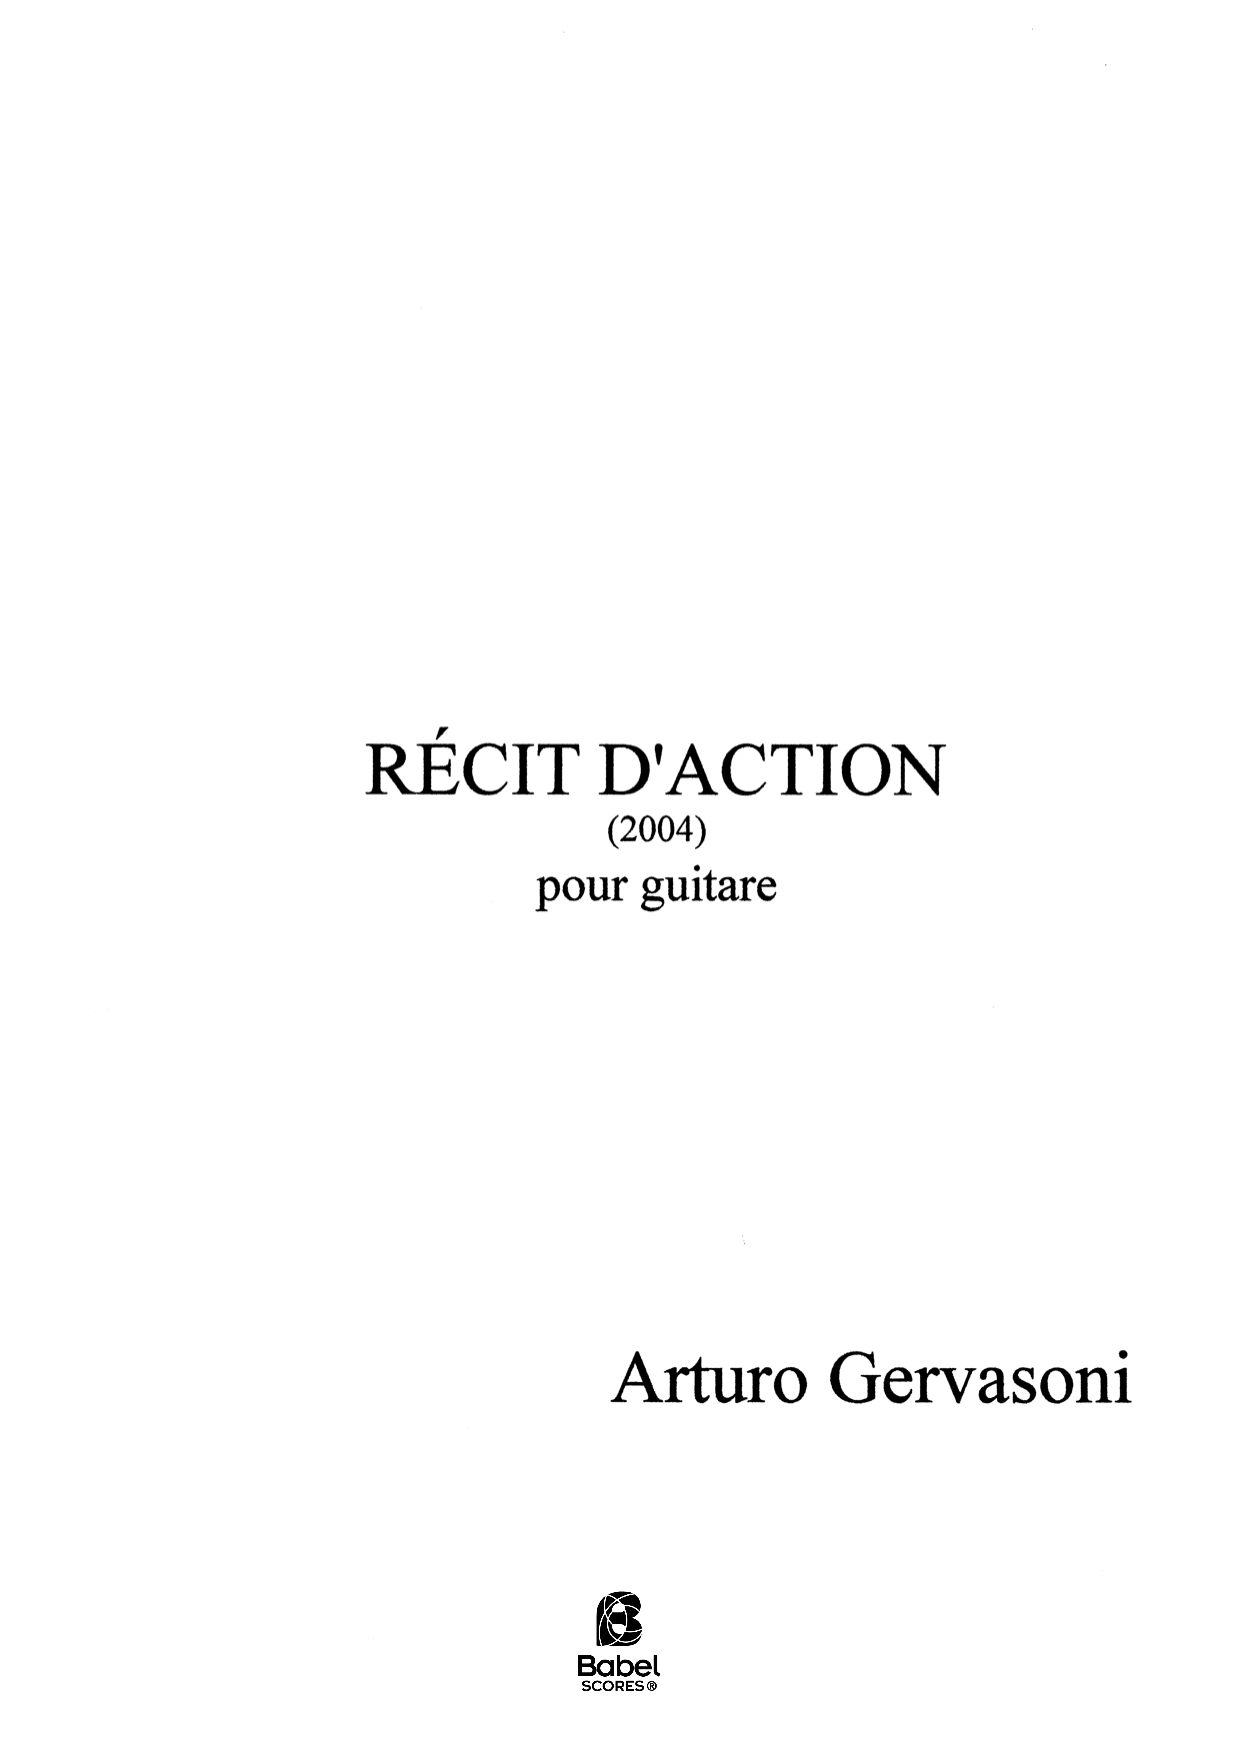 RECIT DACTION A4 z 2 1 105